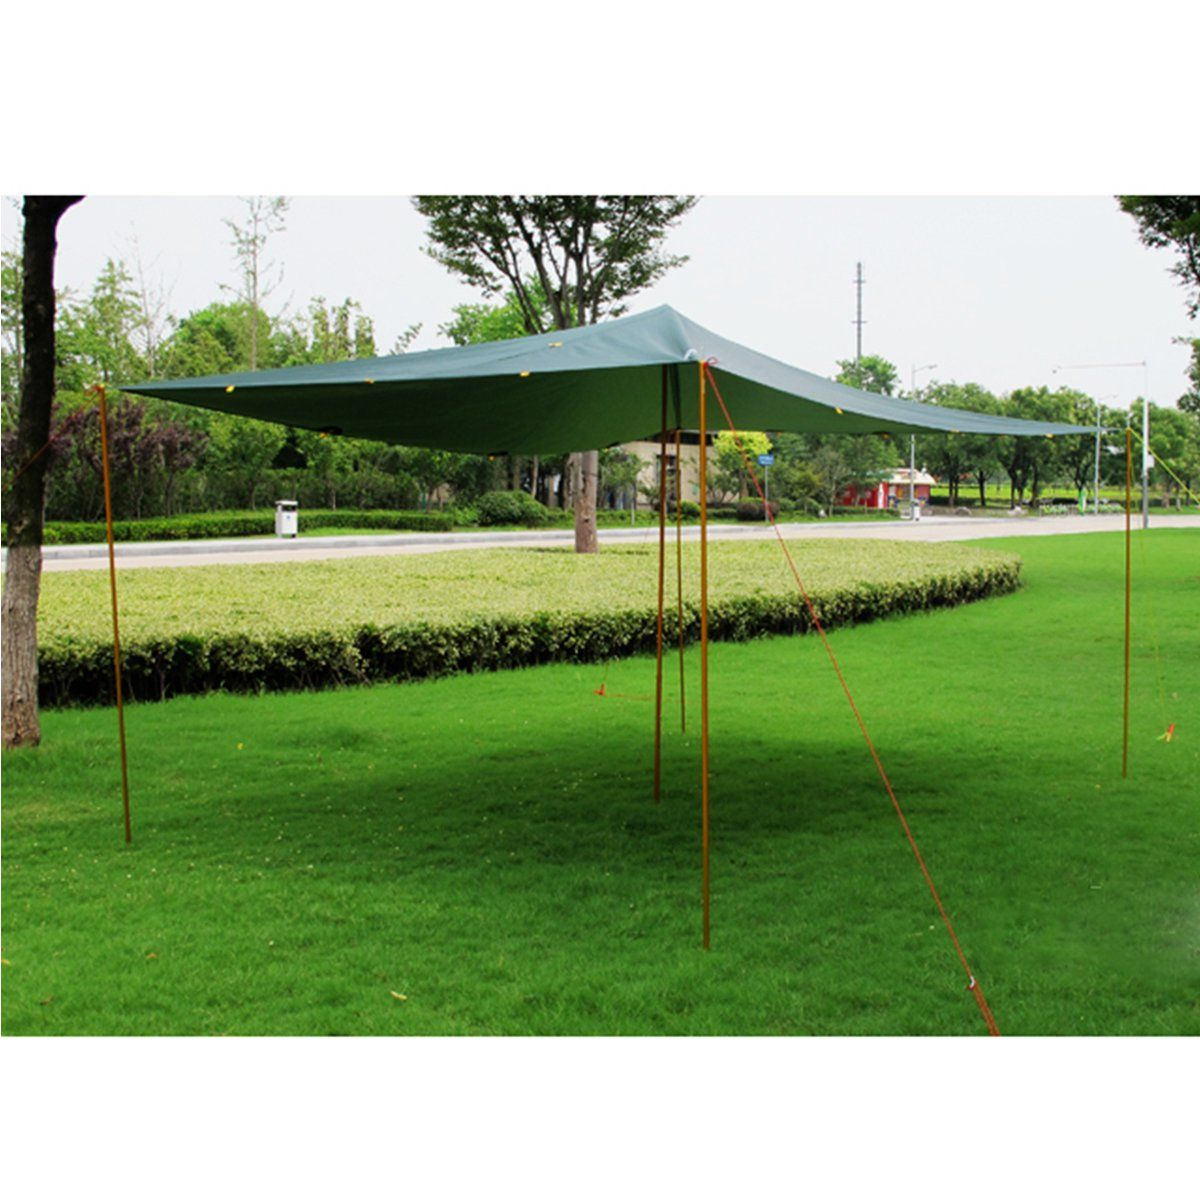 Azarxis Tarp Tent Poles Aluminium Alloy Supporting Replacement Rod Portable for Tarp C&ing Hiking Shelter Awning Pack of 2 Poles Gold 6.56ft *** For more ...  sc 1 st  Pinterest & Azarxis Tarp Tent Poles Aluminium Alloy Supporting Replacement Rod ...